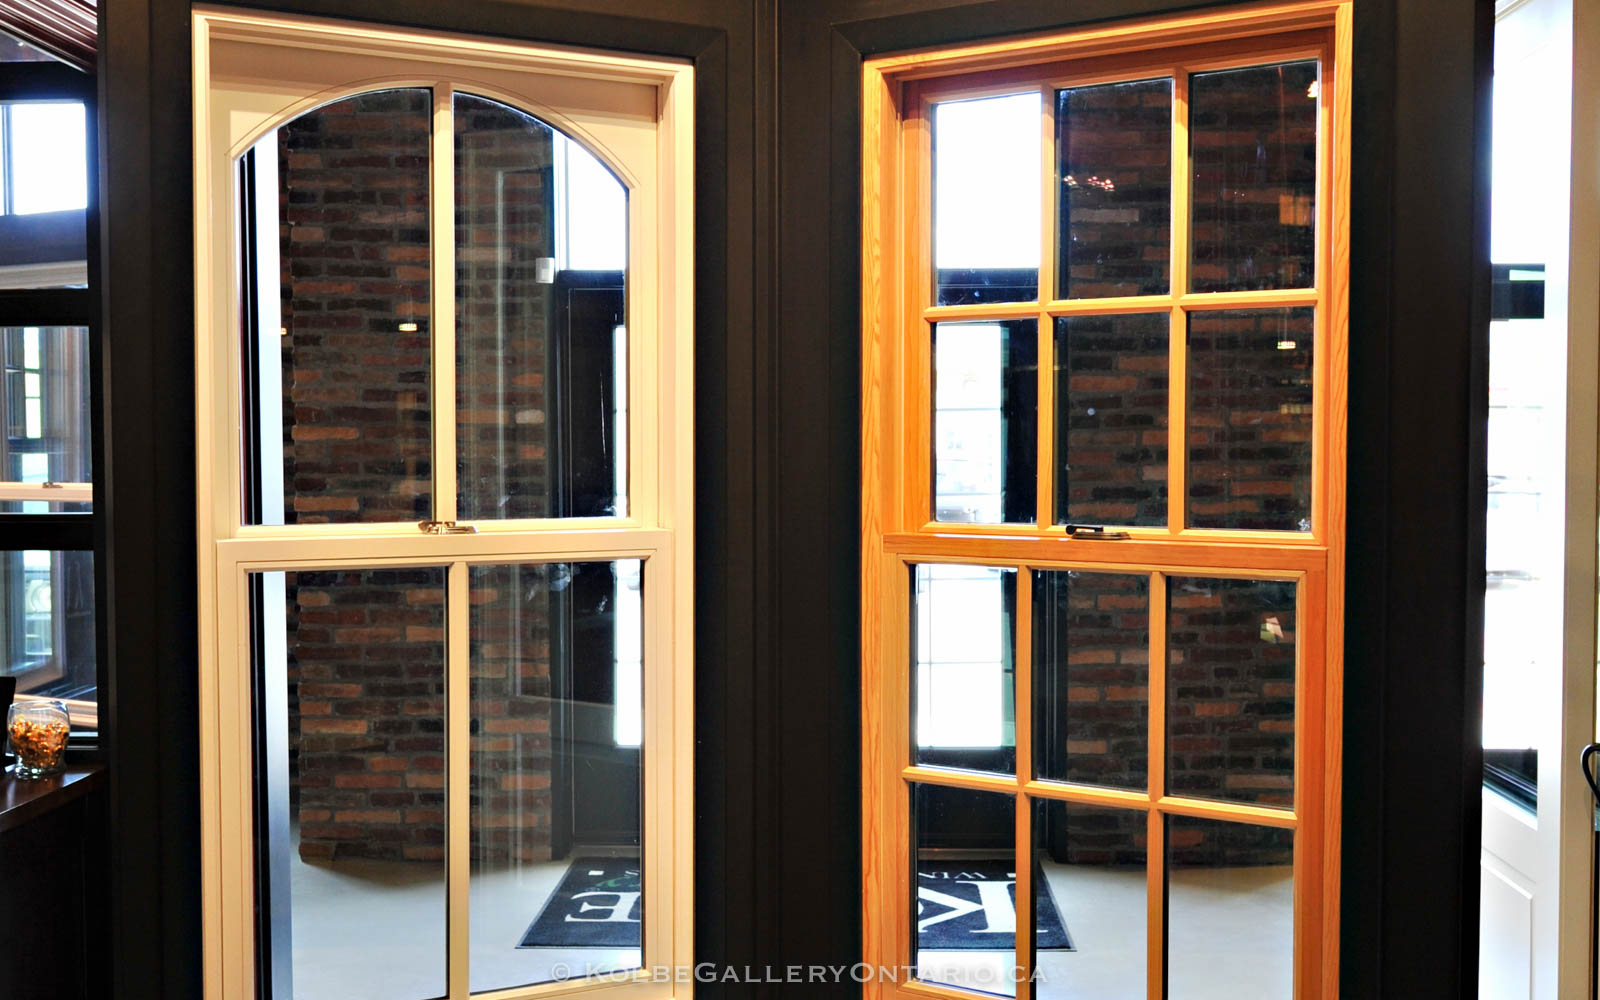 KolbeGalleryOntario.ca-windows-and-doors-Oakville-showroom-20120510-095907